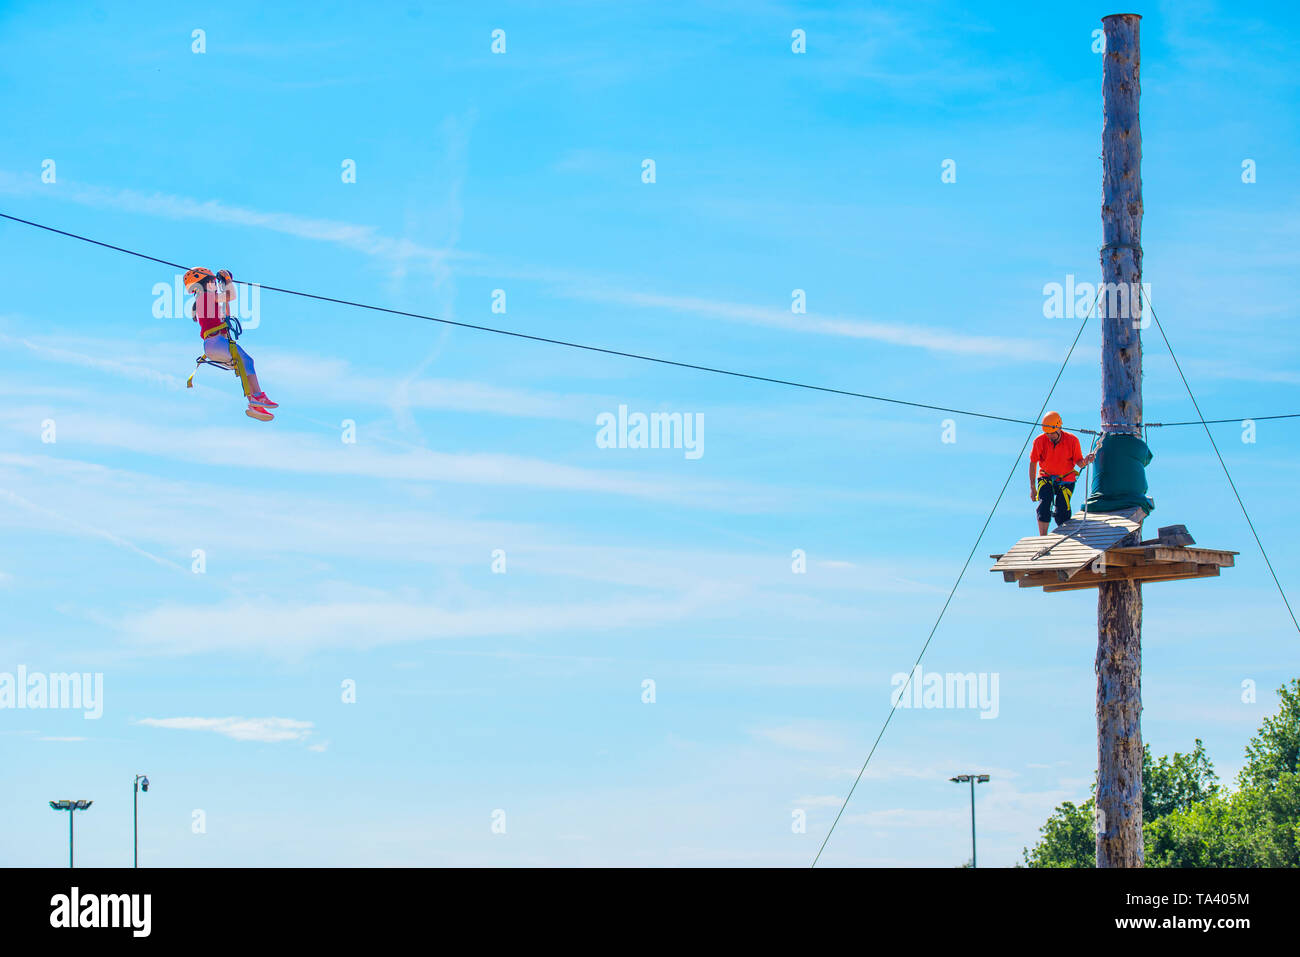 Little brave caucasian 7 years old girlie using a zip line in a rope playground structure in 5 meters high altitude. An indefinited man lend a helping - Stock Image